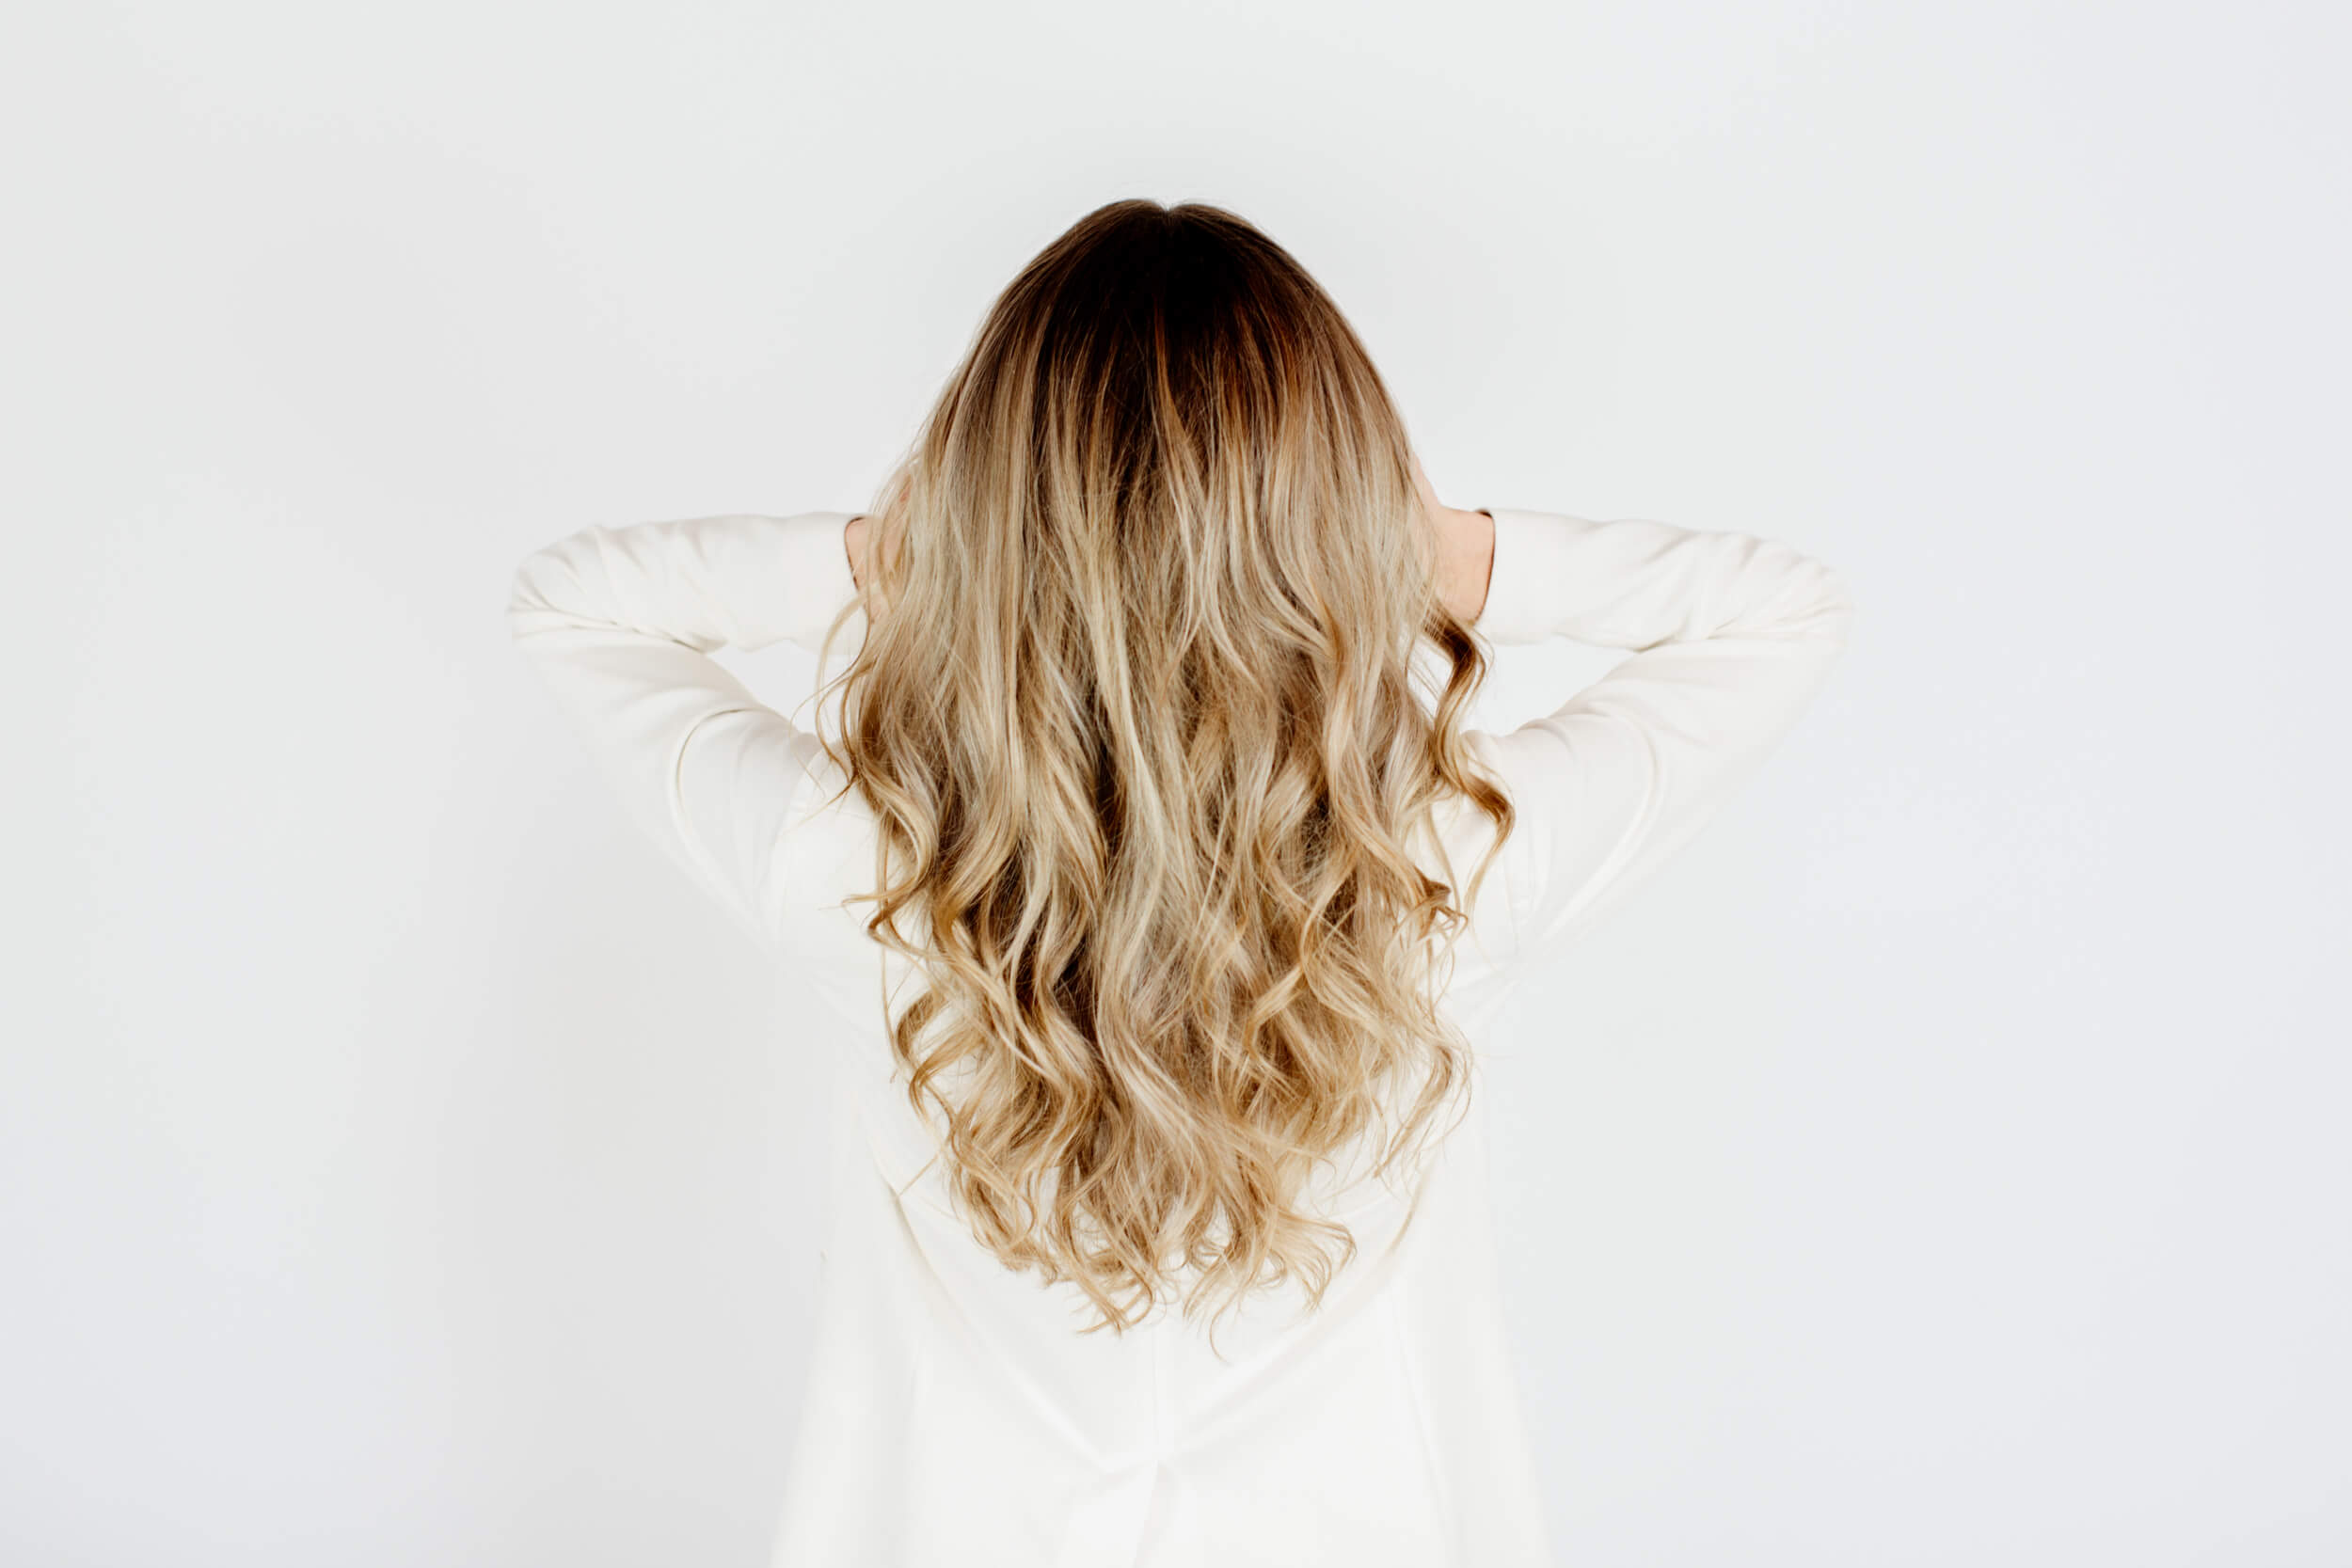 Blonde hair as shown from the back.